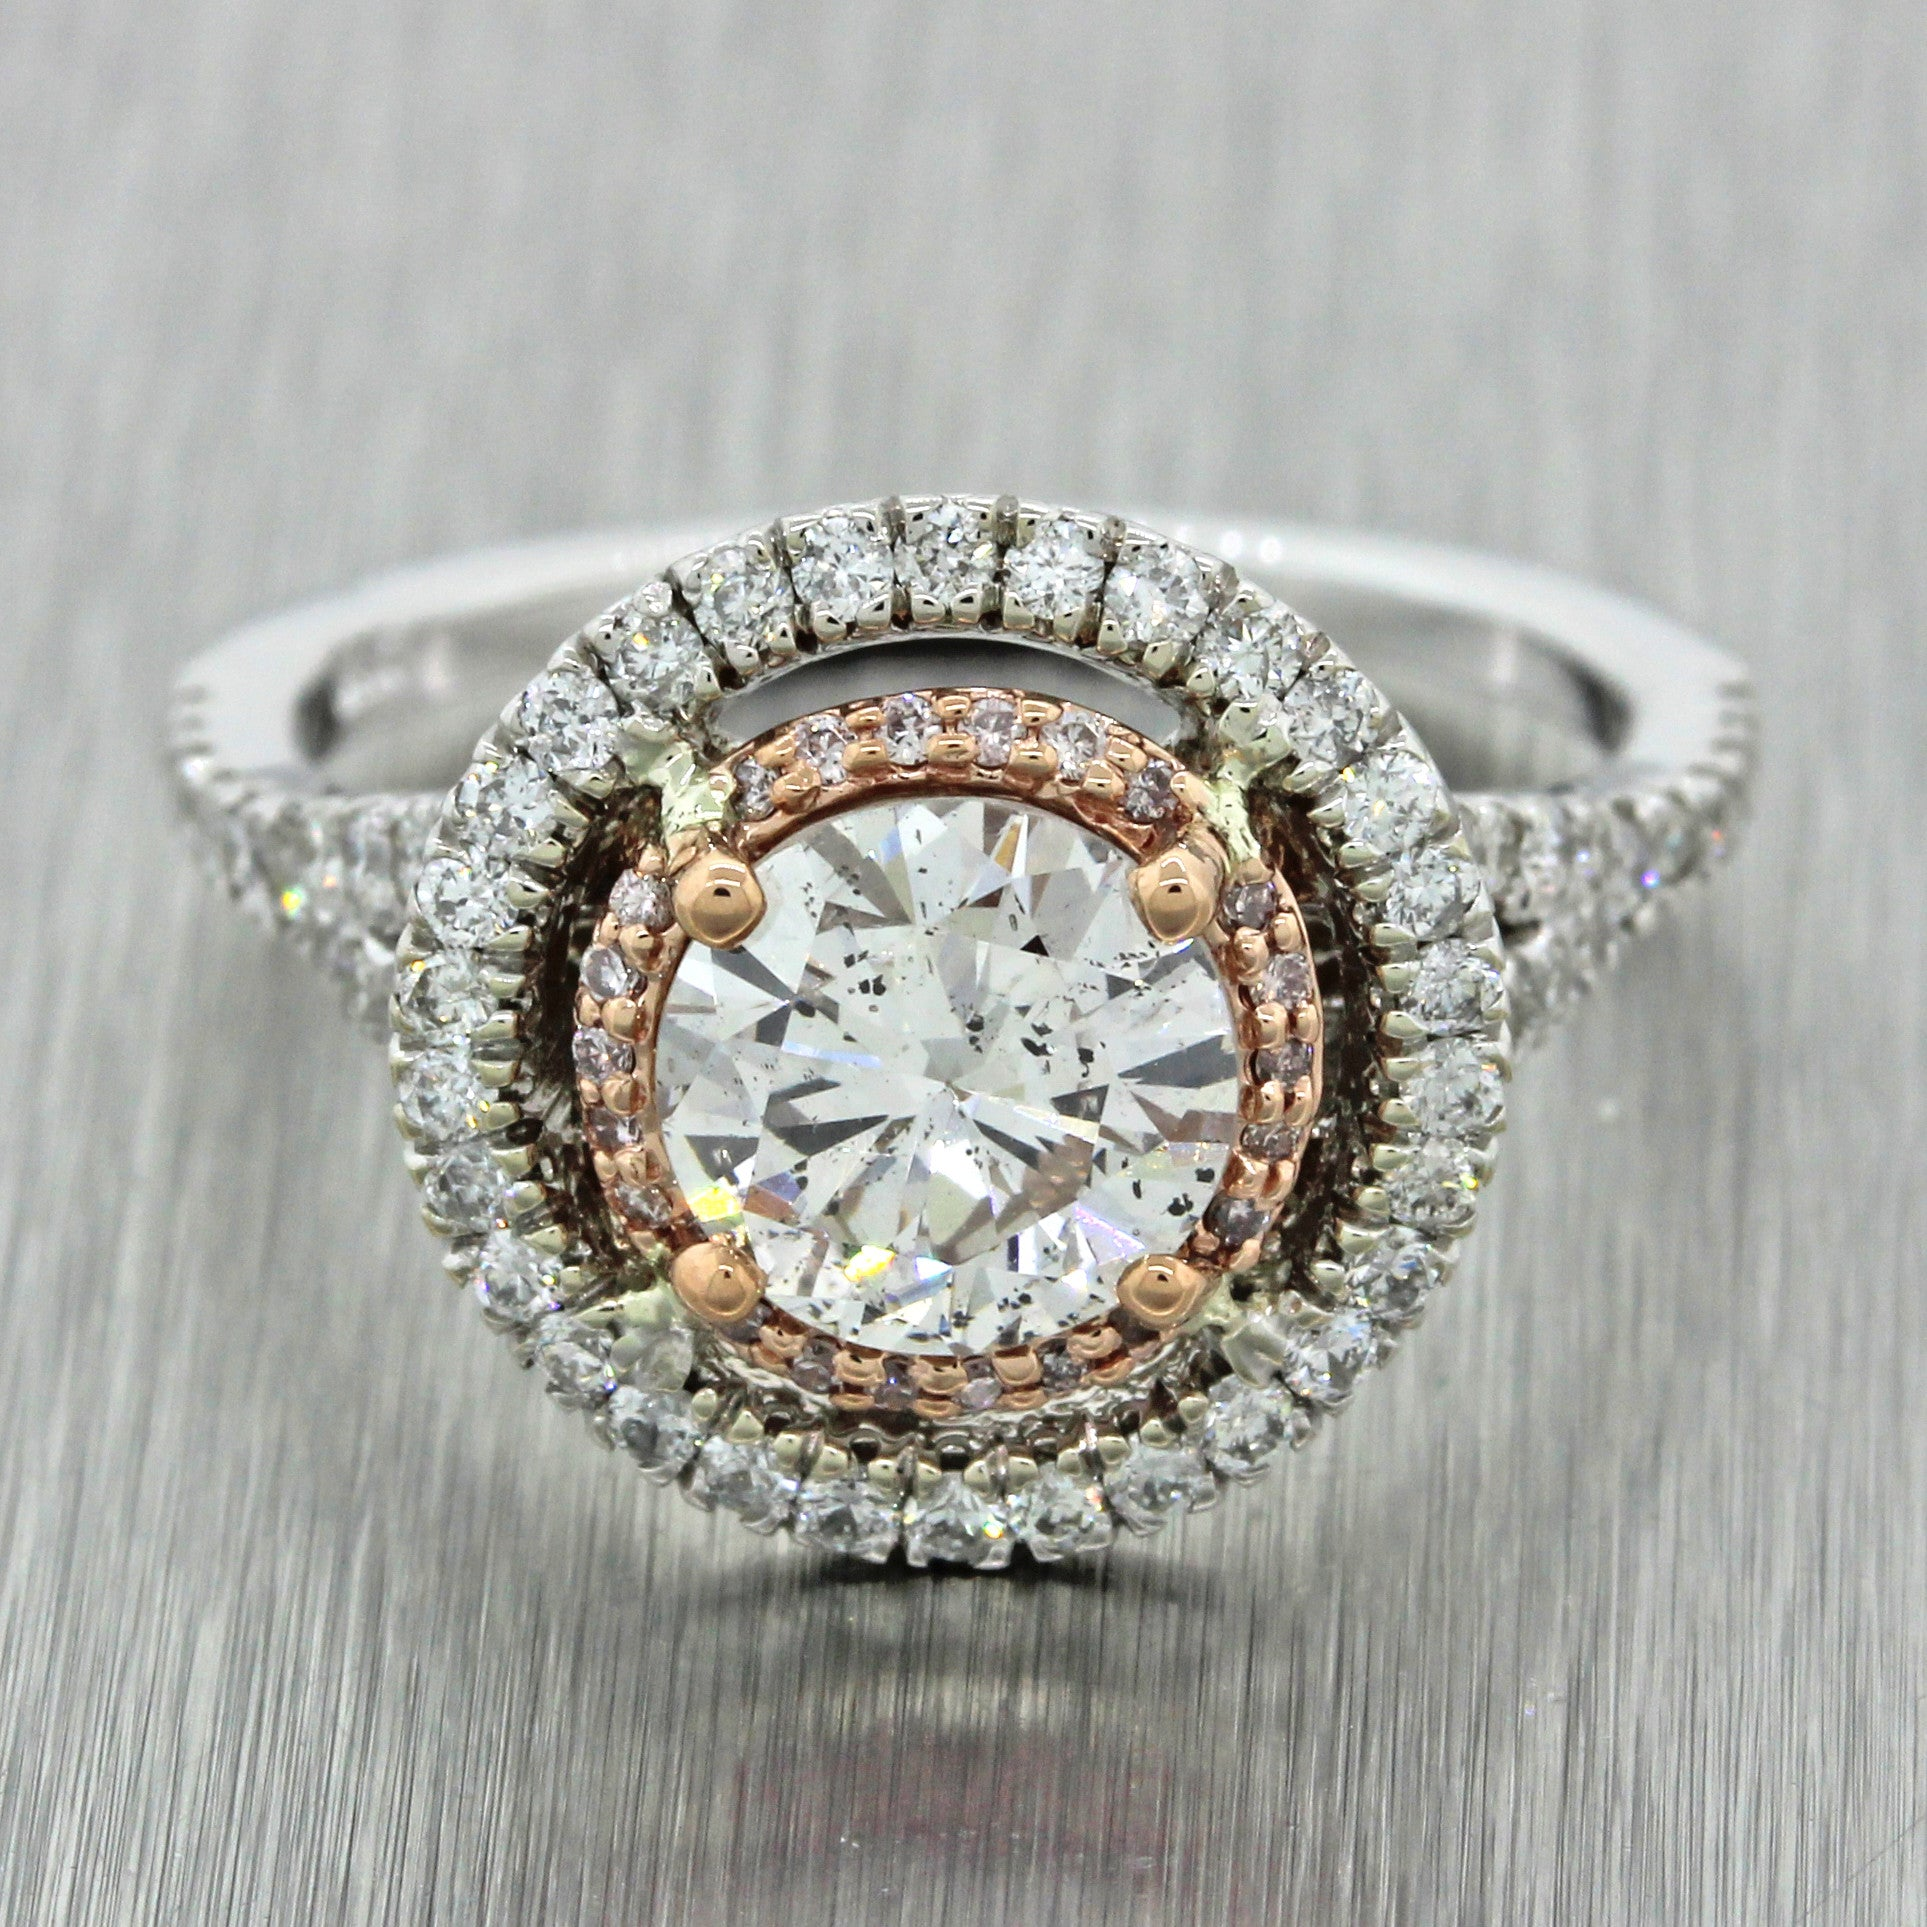 Gorgeous Estate 14k White Gold 1.24ct Natural Pink Diamond Halo Engagement Ring GIA